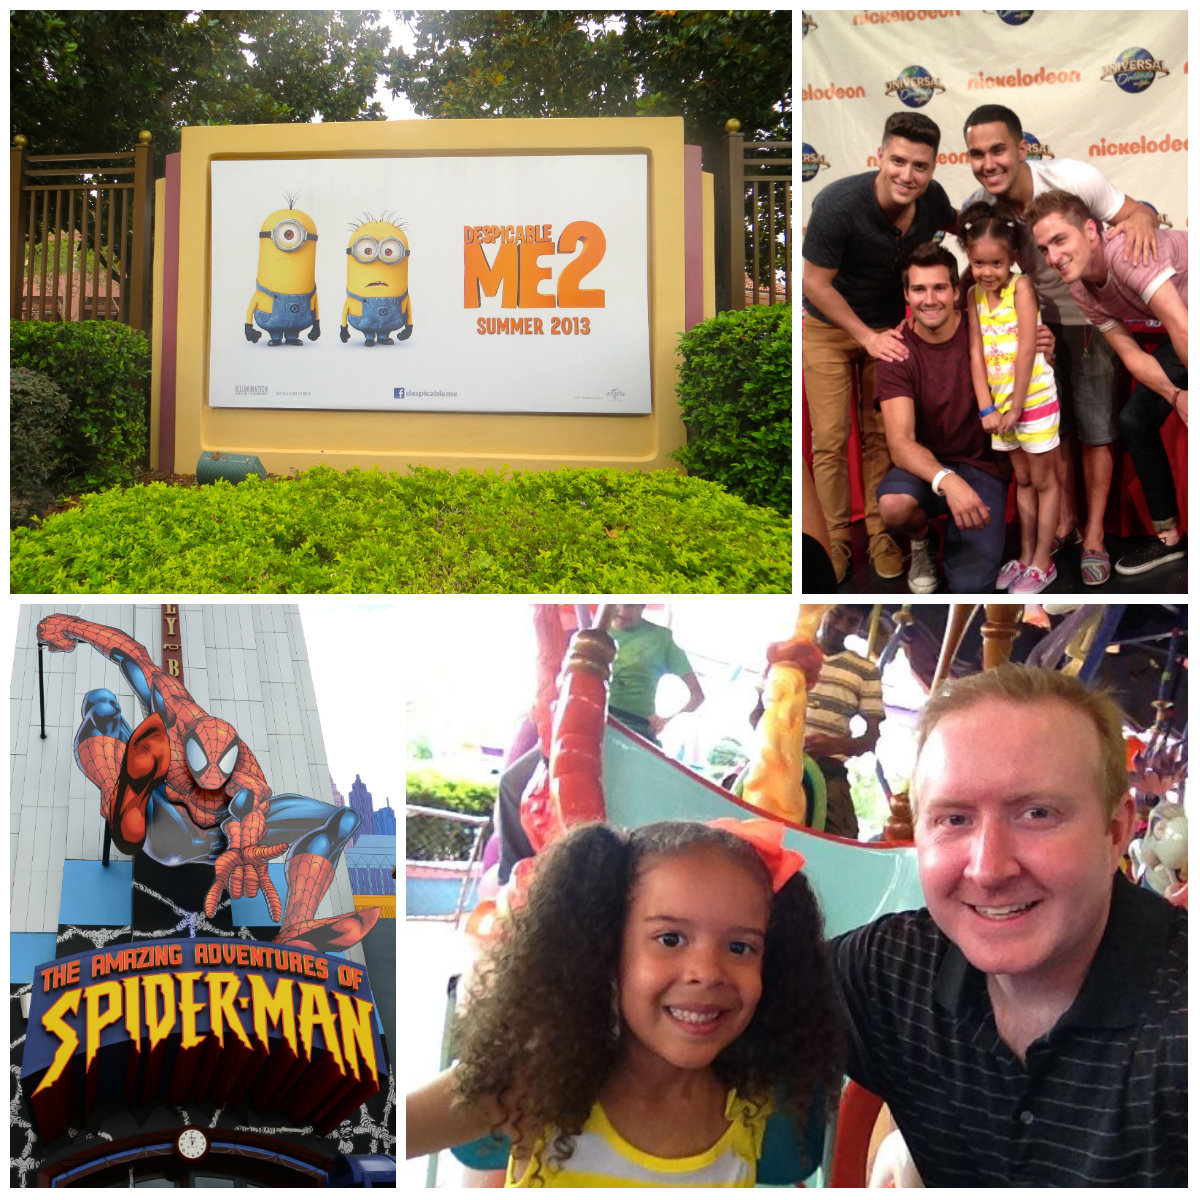 despicable me, daddy-daughter, #dm, #dm2, #despicableme, minion, #minion, universal, #universal, gru, minion mayhem, vip tour, big time rush,